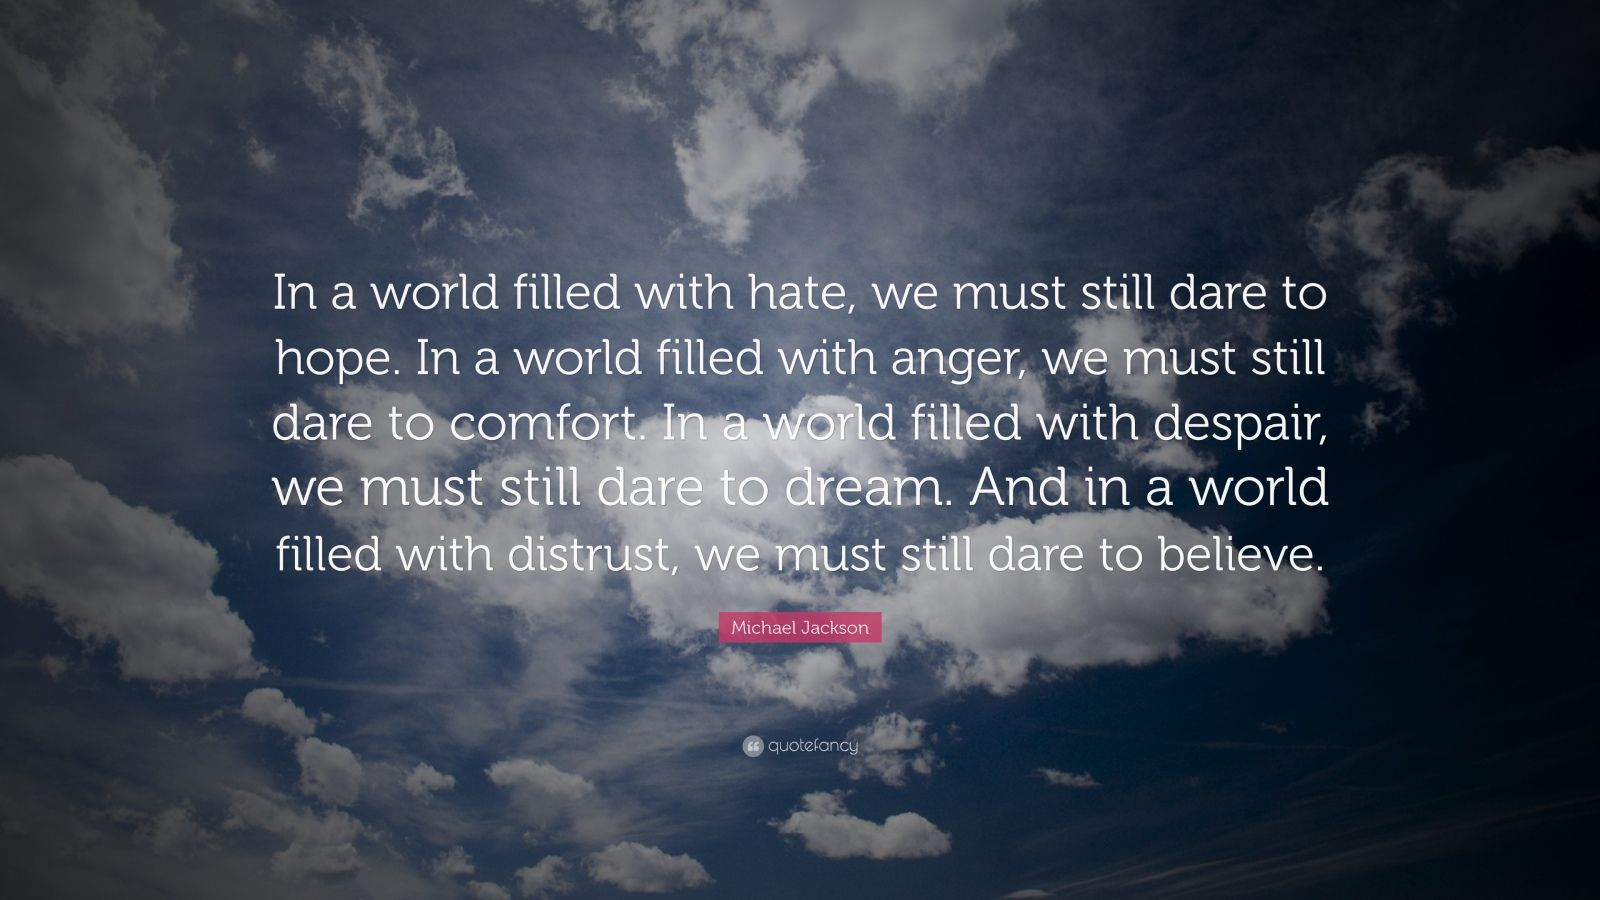 """Michael Jackson Quote: """"In a world filled with hate, we must still dare to hope. In a world filled with anger, we must still dare to comfort. In a world filled with despair, we must still dare to dream. And in a world filled with distrust, we must still dare to believe."""""""